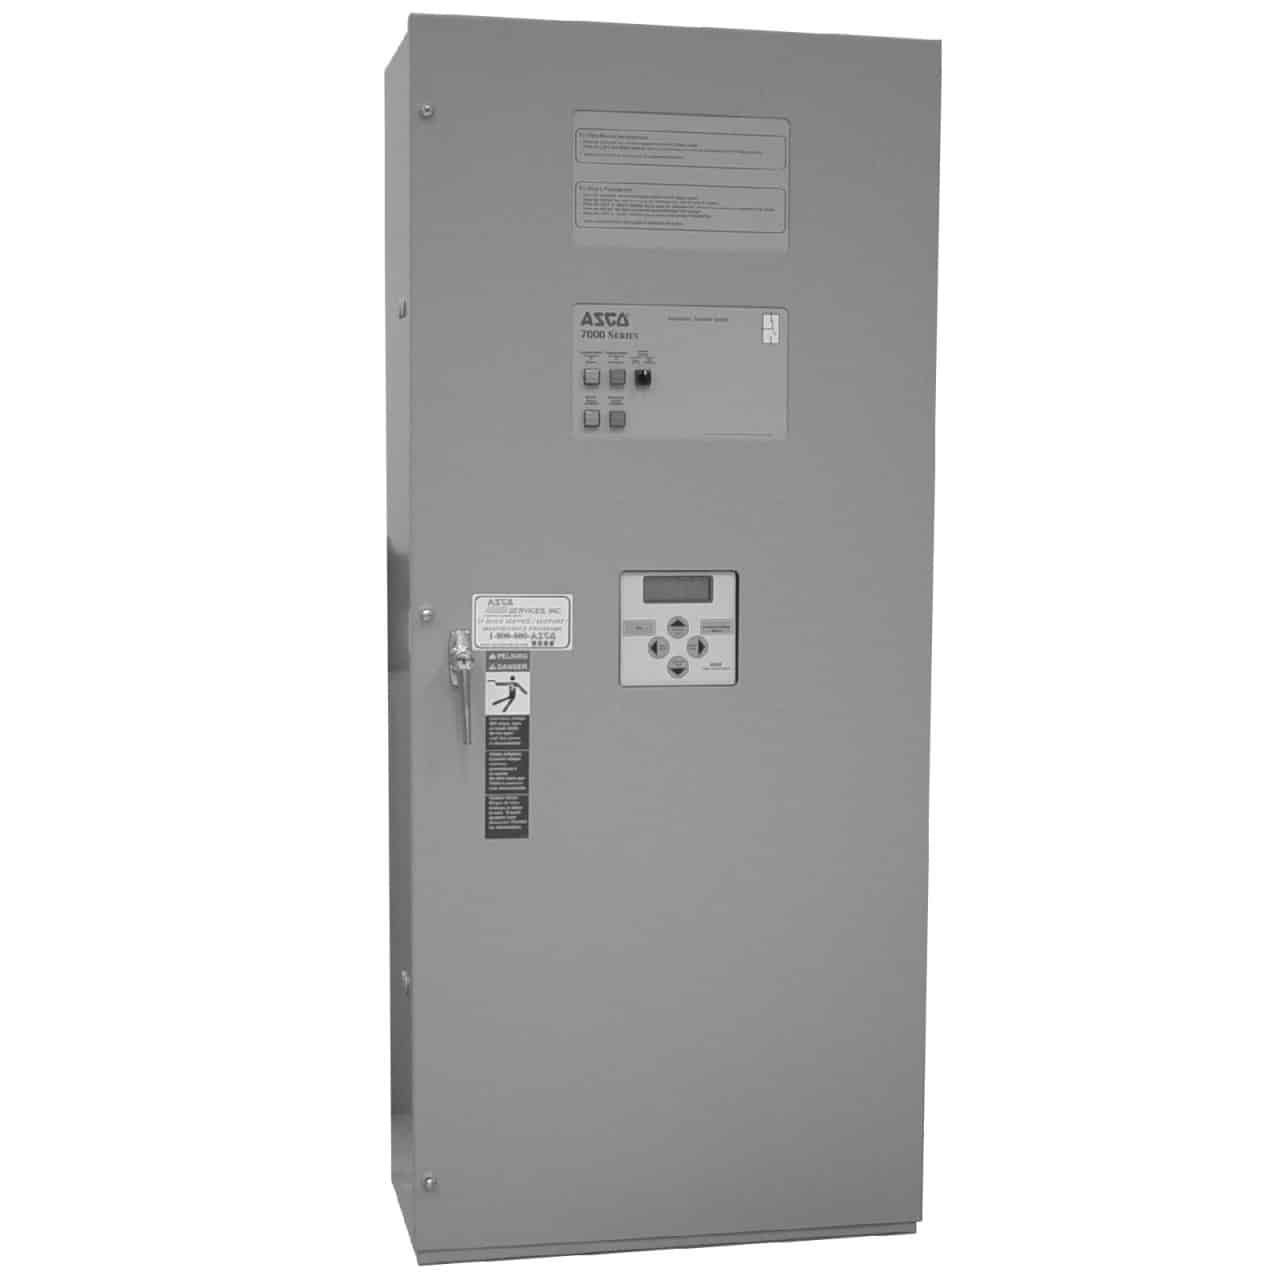 ASCO 7000 Series 260 Amp Automatic Transfer Switch